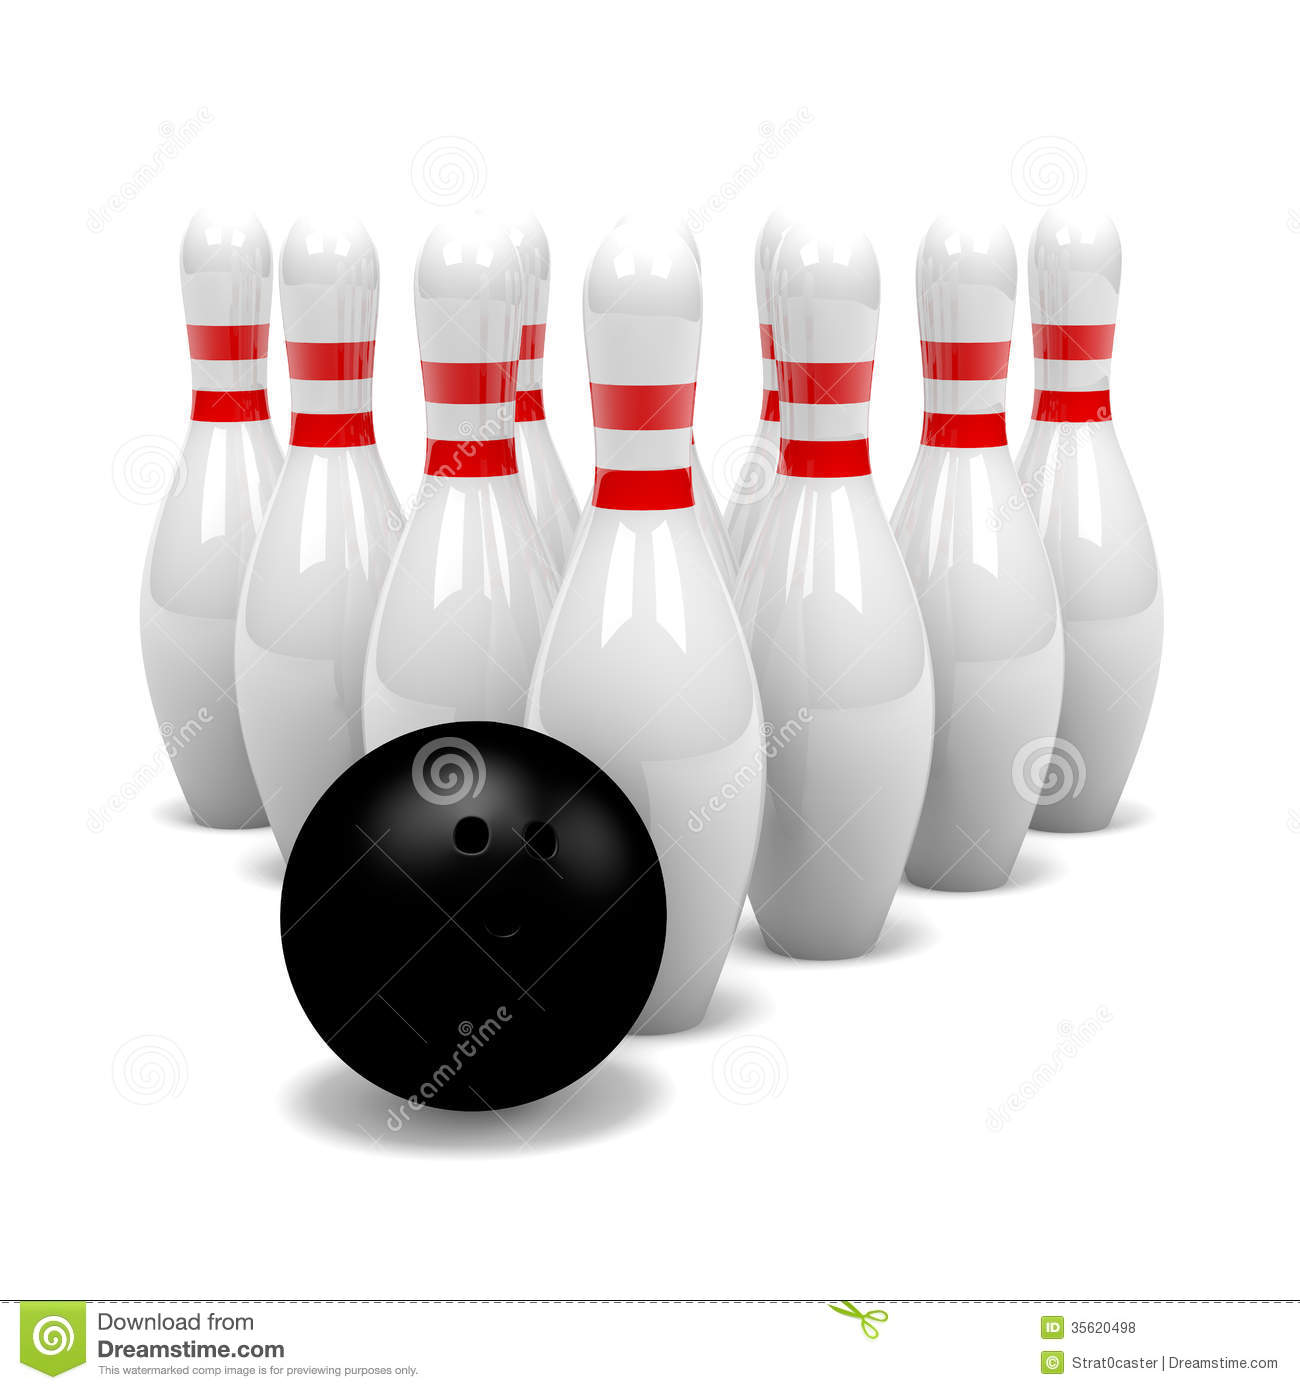 groupe de quilles avec la boule de bowling photos libres de droits image 35620498. Black Bedroom Furniture Sets. Home Design Ideas